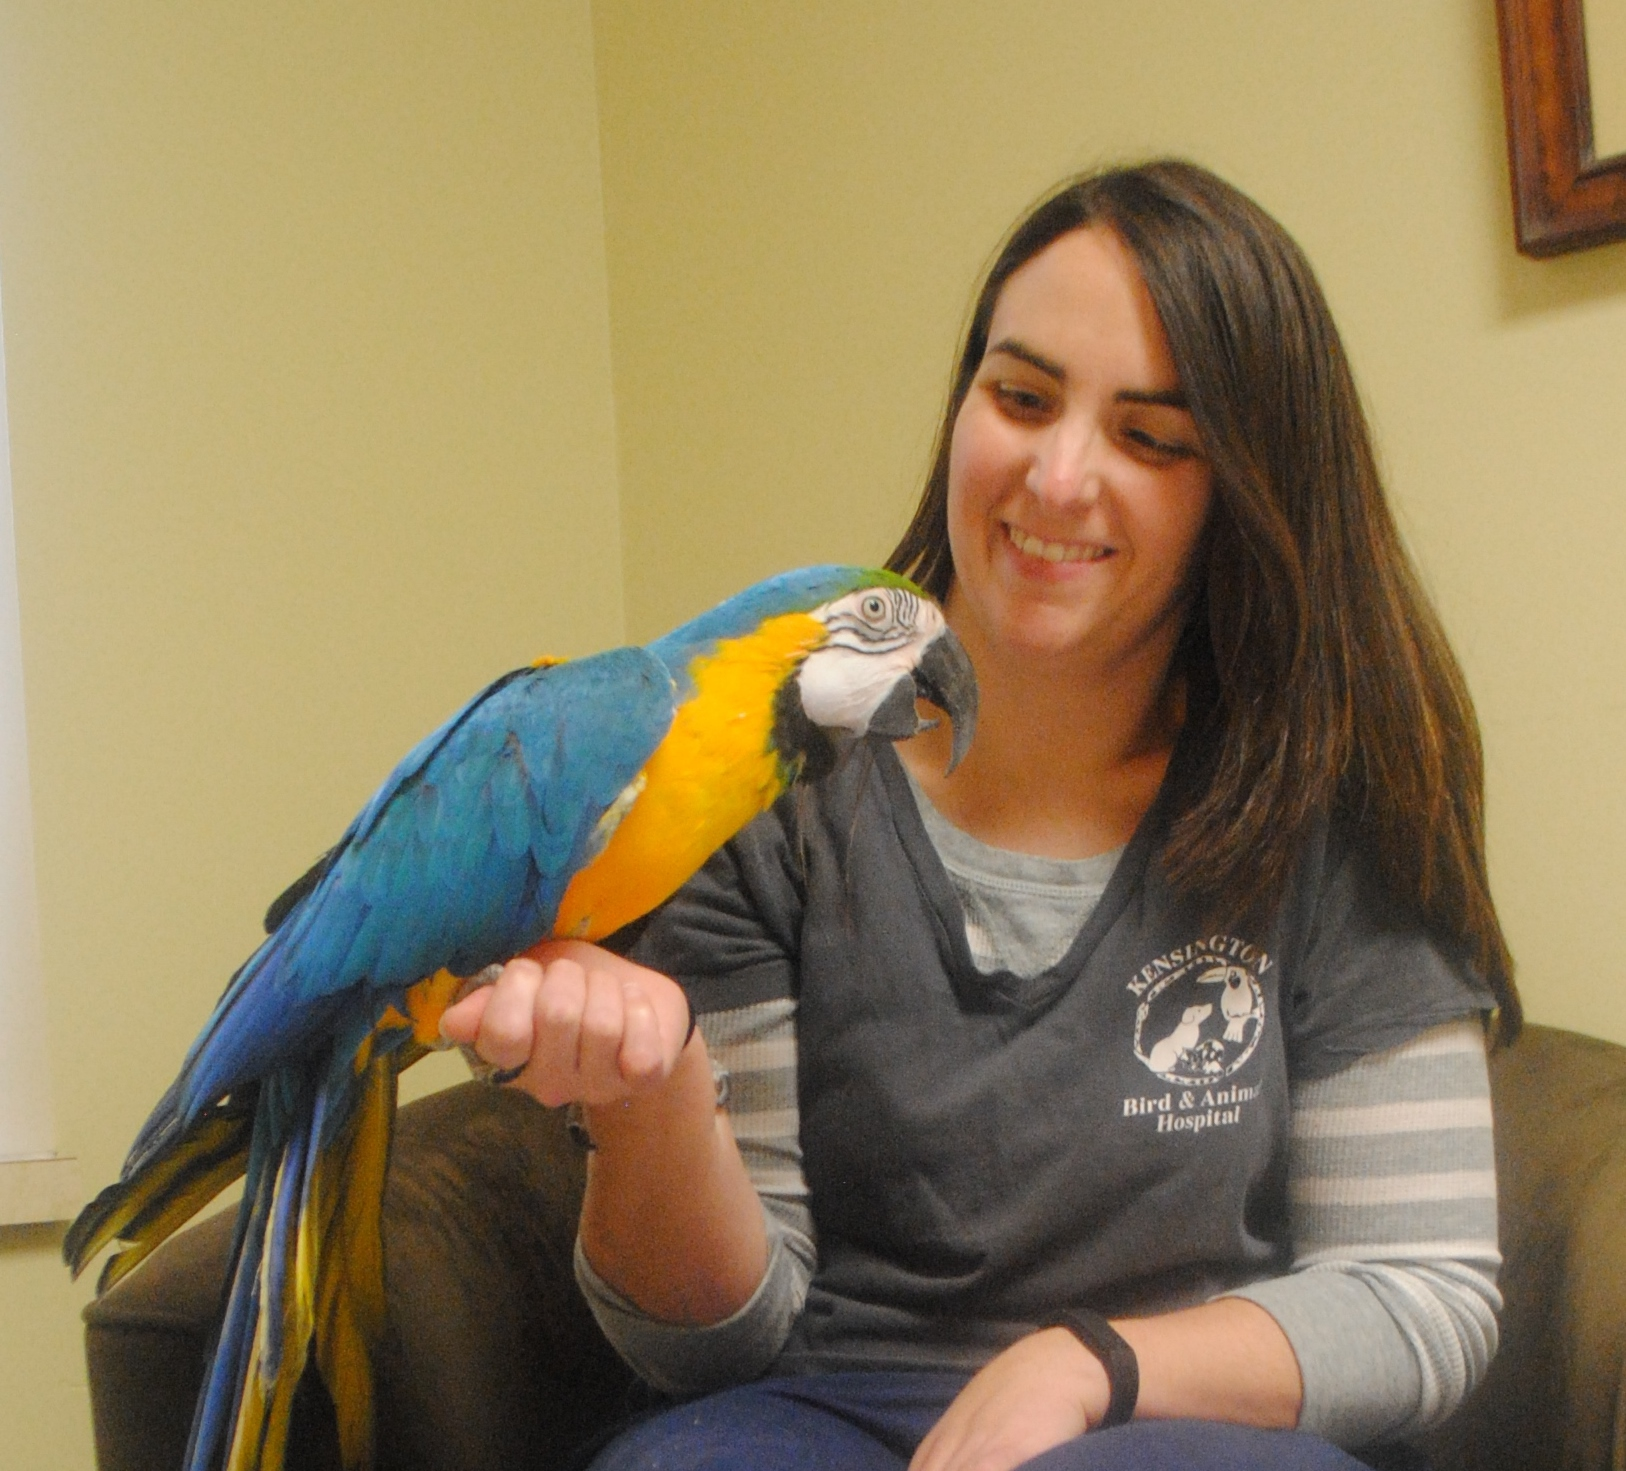 kensington bird and animal hospital veterinarians and staff michelle napolitano